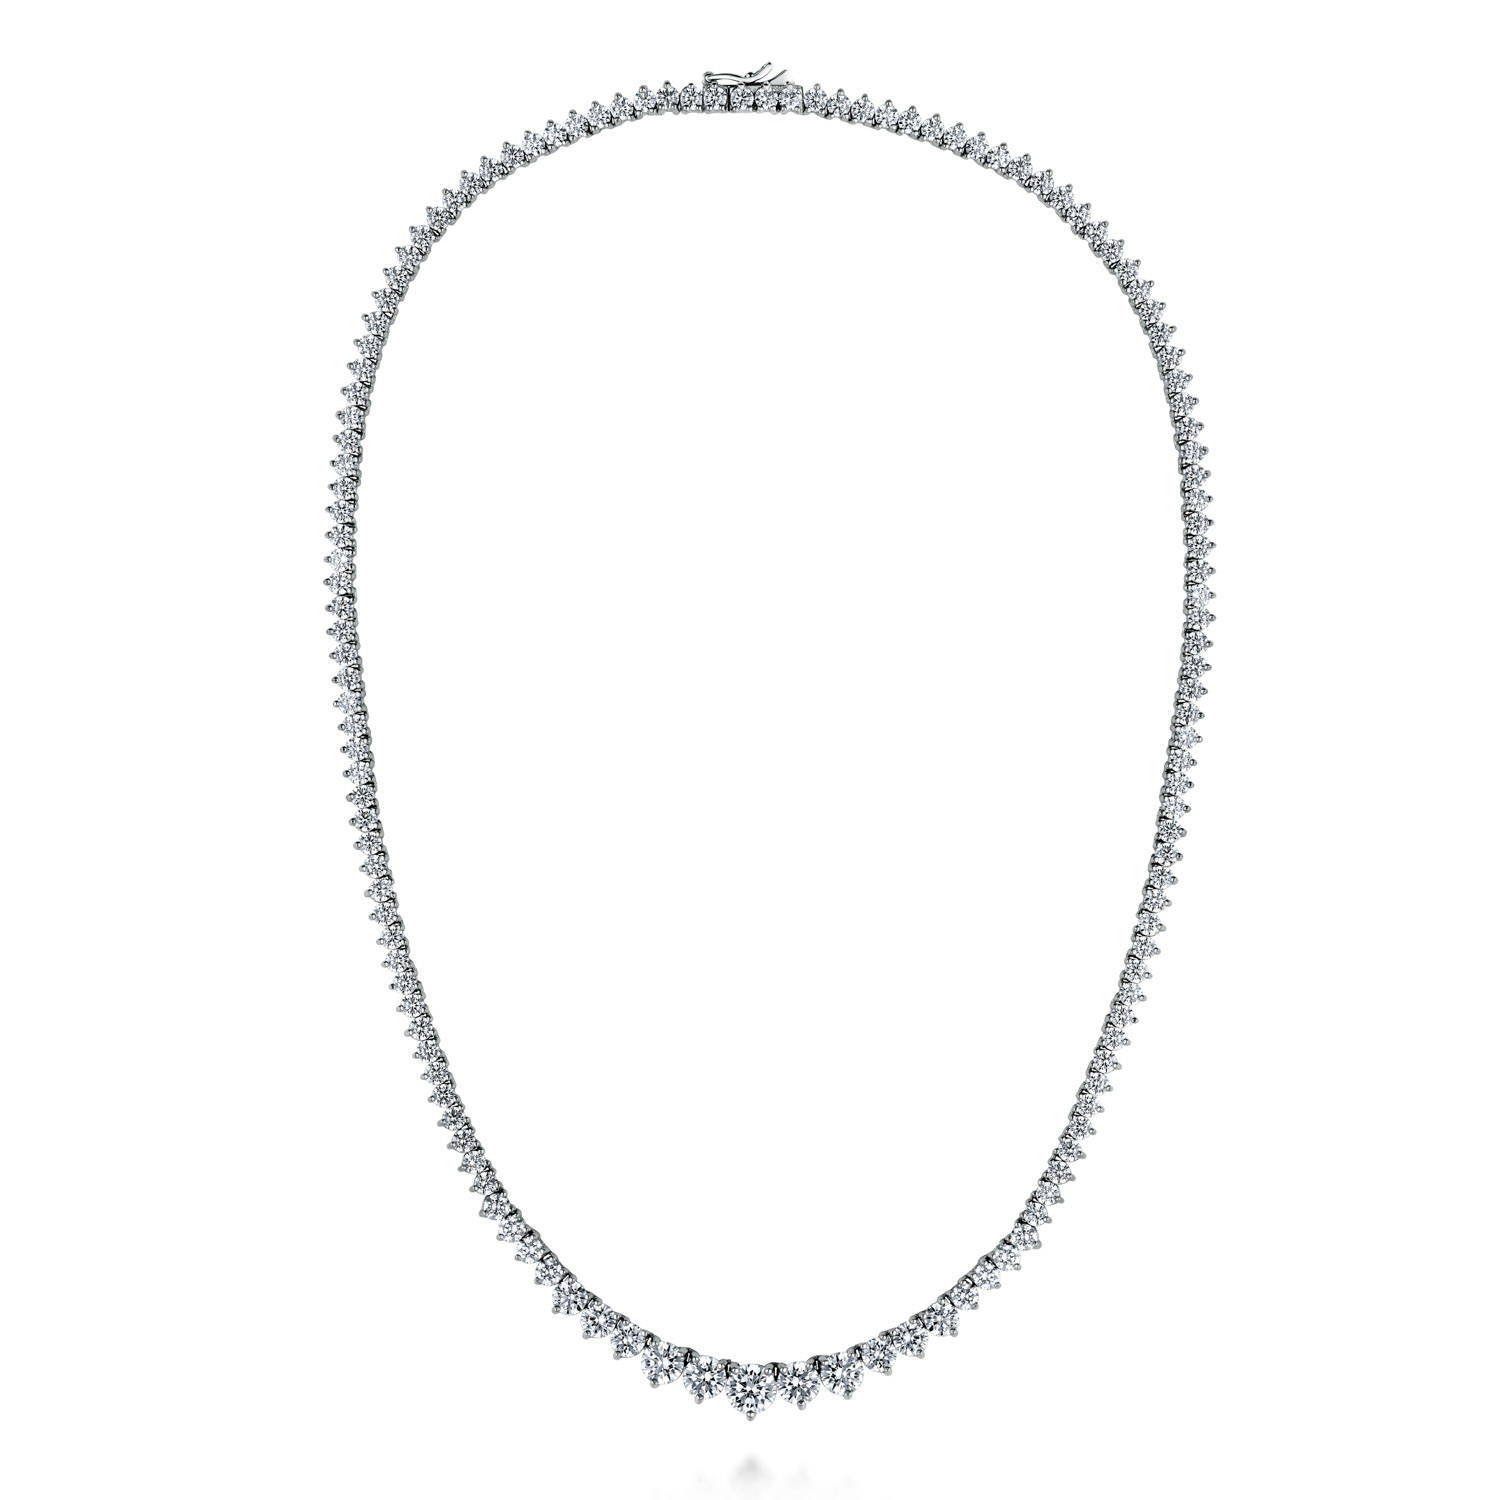 BERRICLE Rhodium Plated Sterling Silver Cubic Zirconia CZ Graduated Tennis Necklace 18''